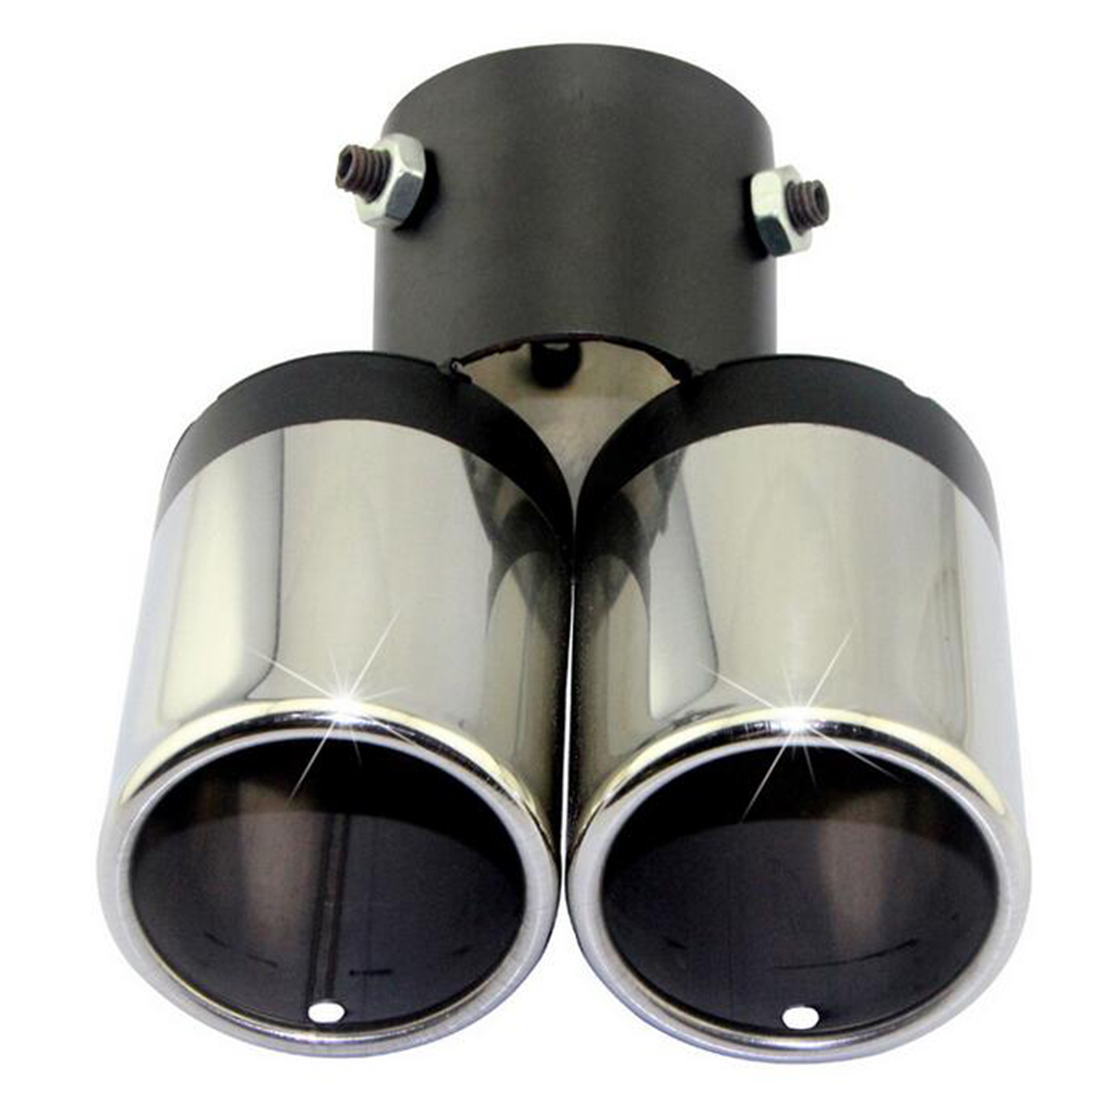 CAR-partment Good selling Stylish Car Vehicle Exhaust Muffler Steel Double Tail Pipe Moto Accessory